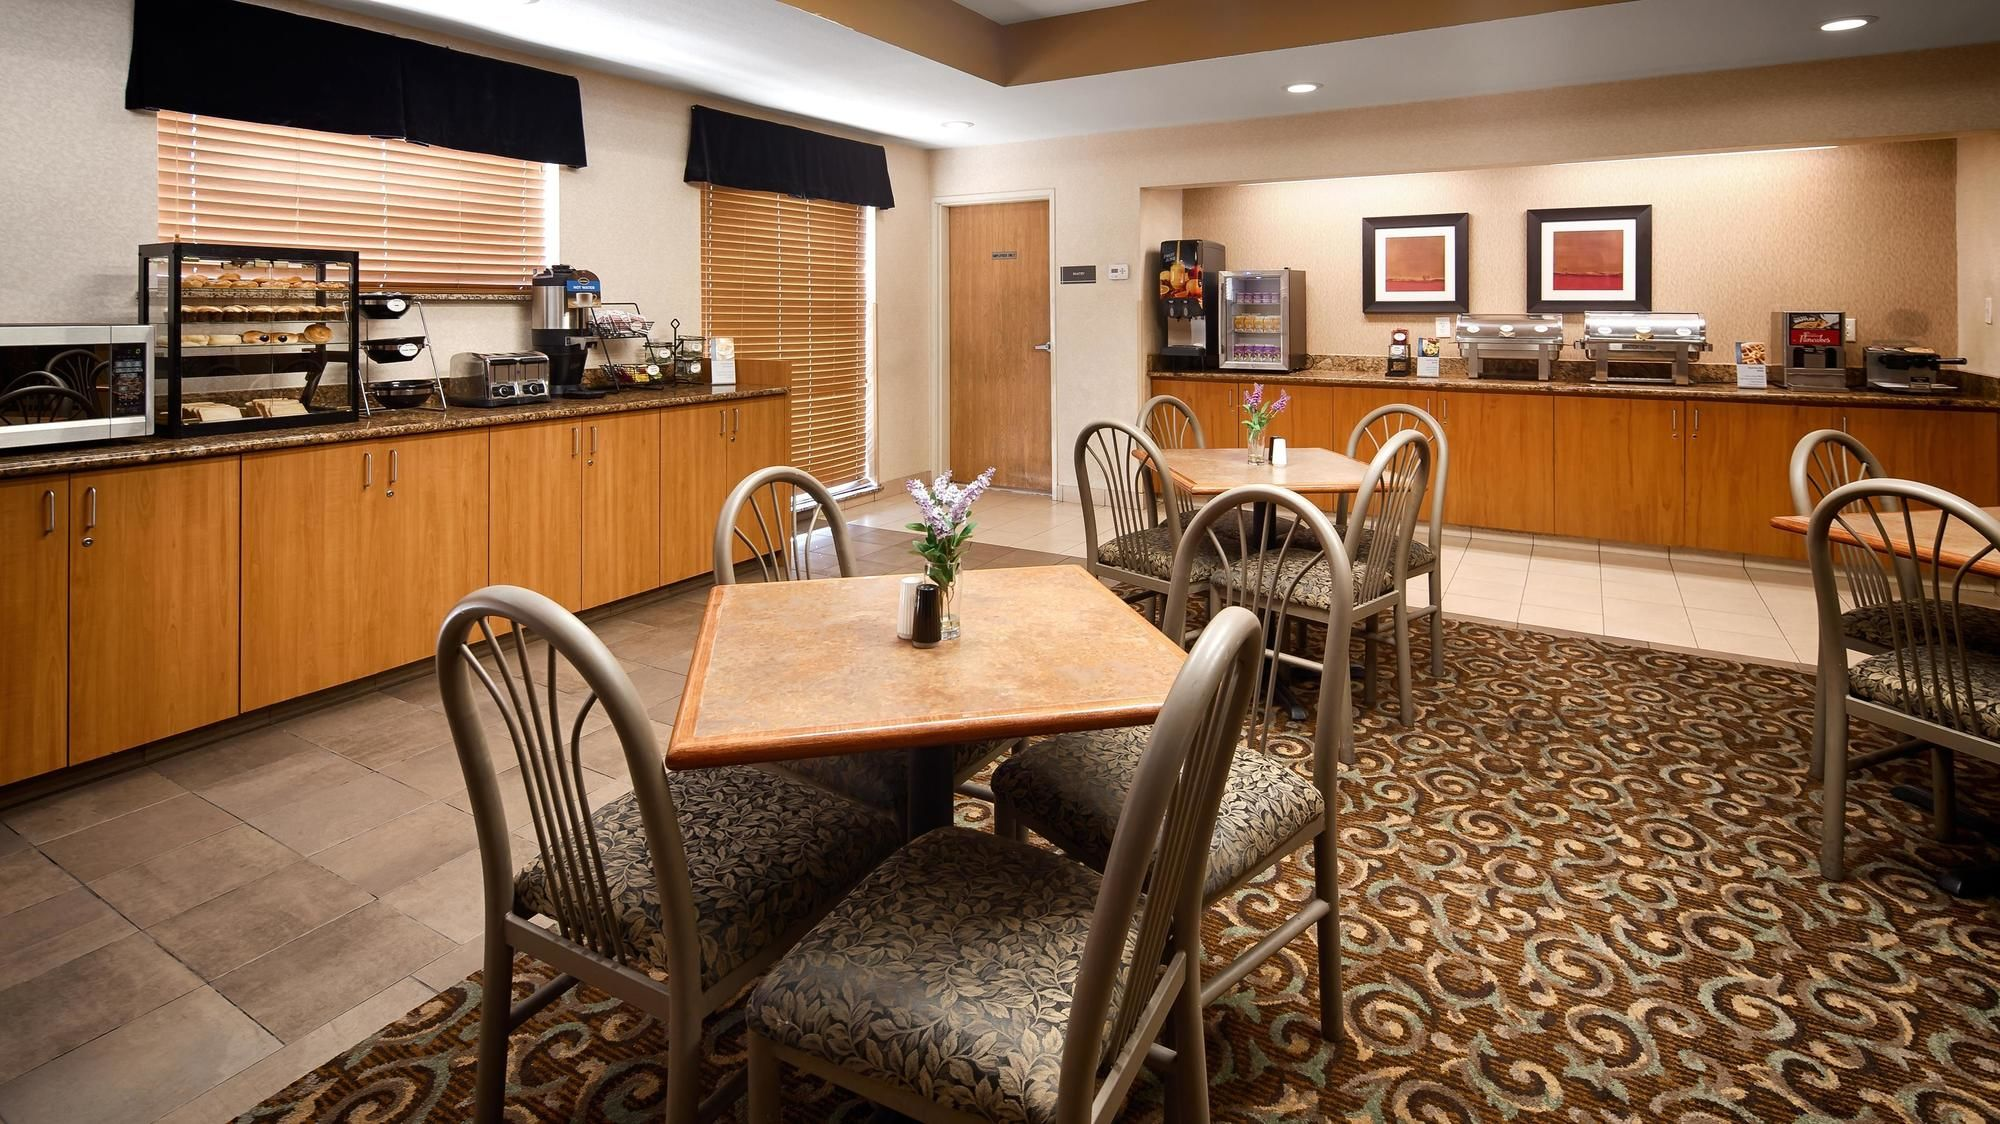 Aurora Hotel Coupons for Aurora, Colorado - FreeHotelCoupons.com